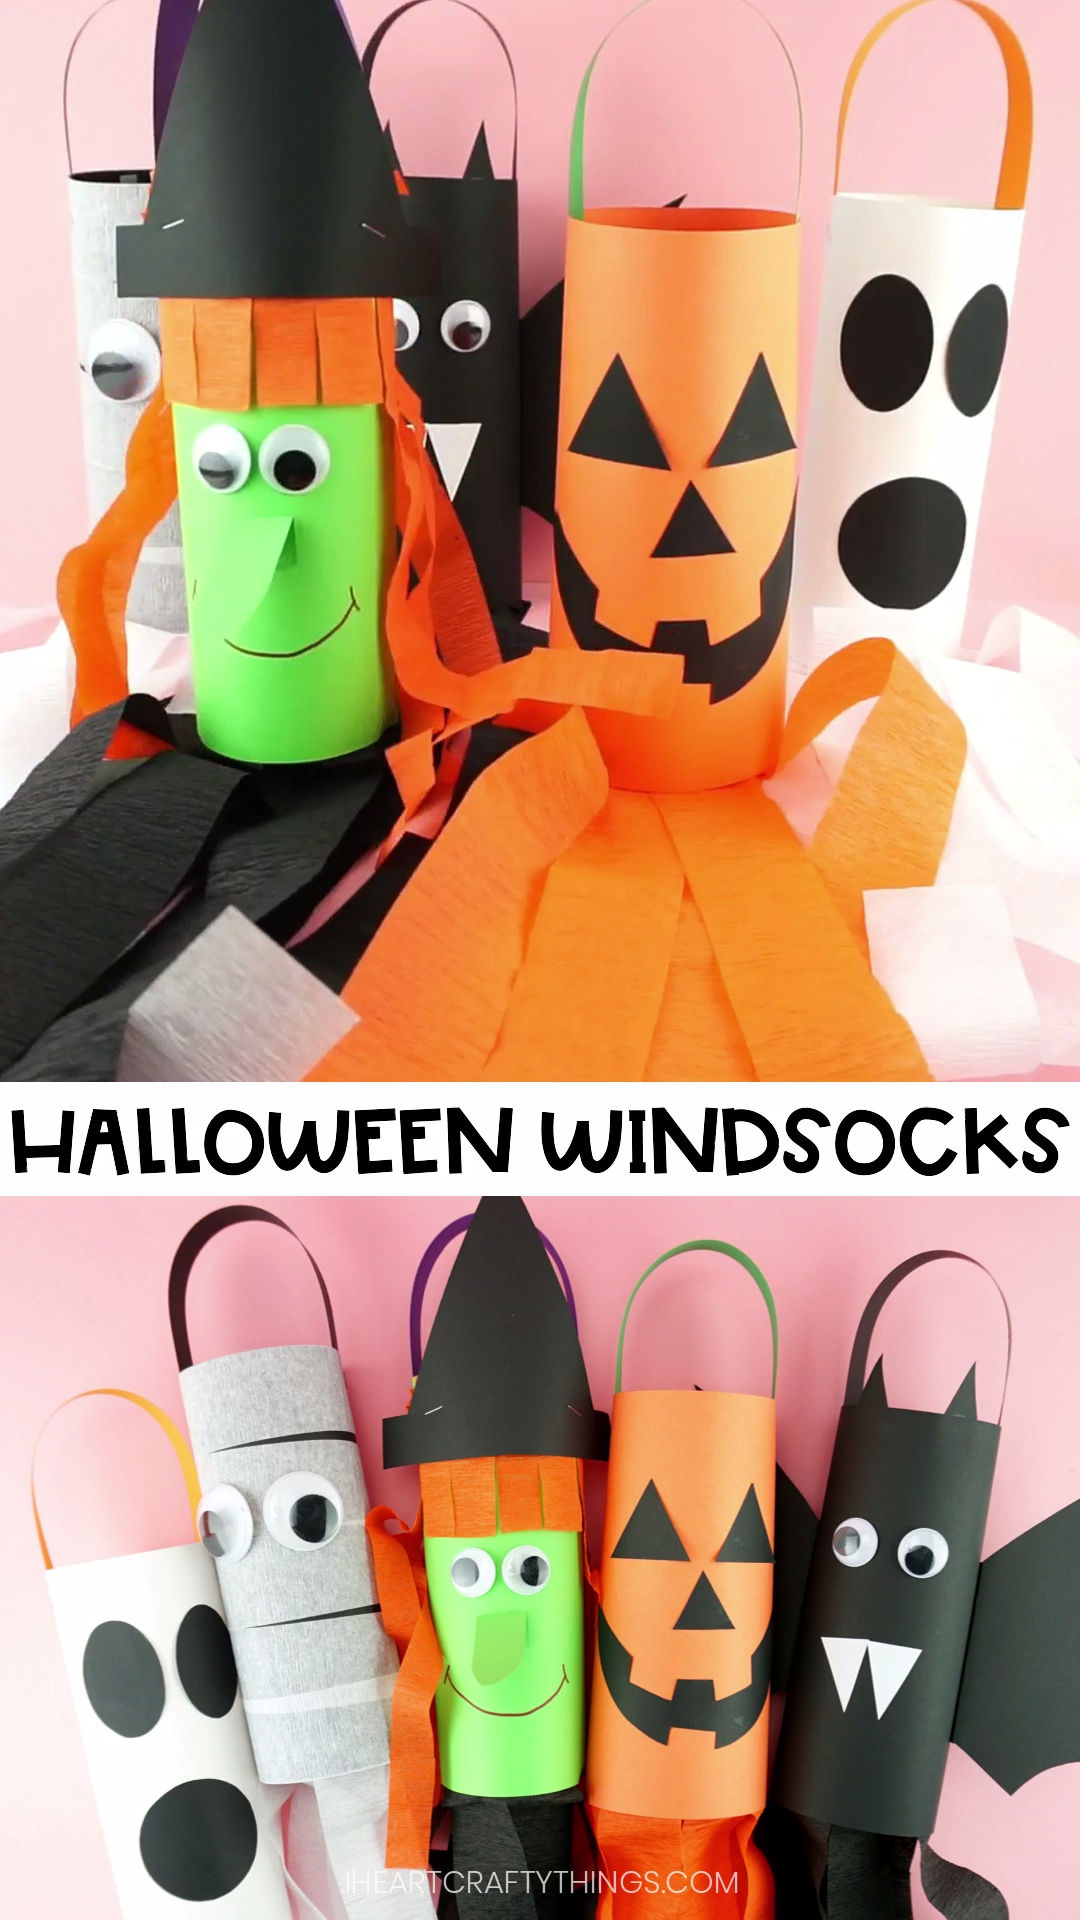 How to Make Halloween Windsocks